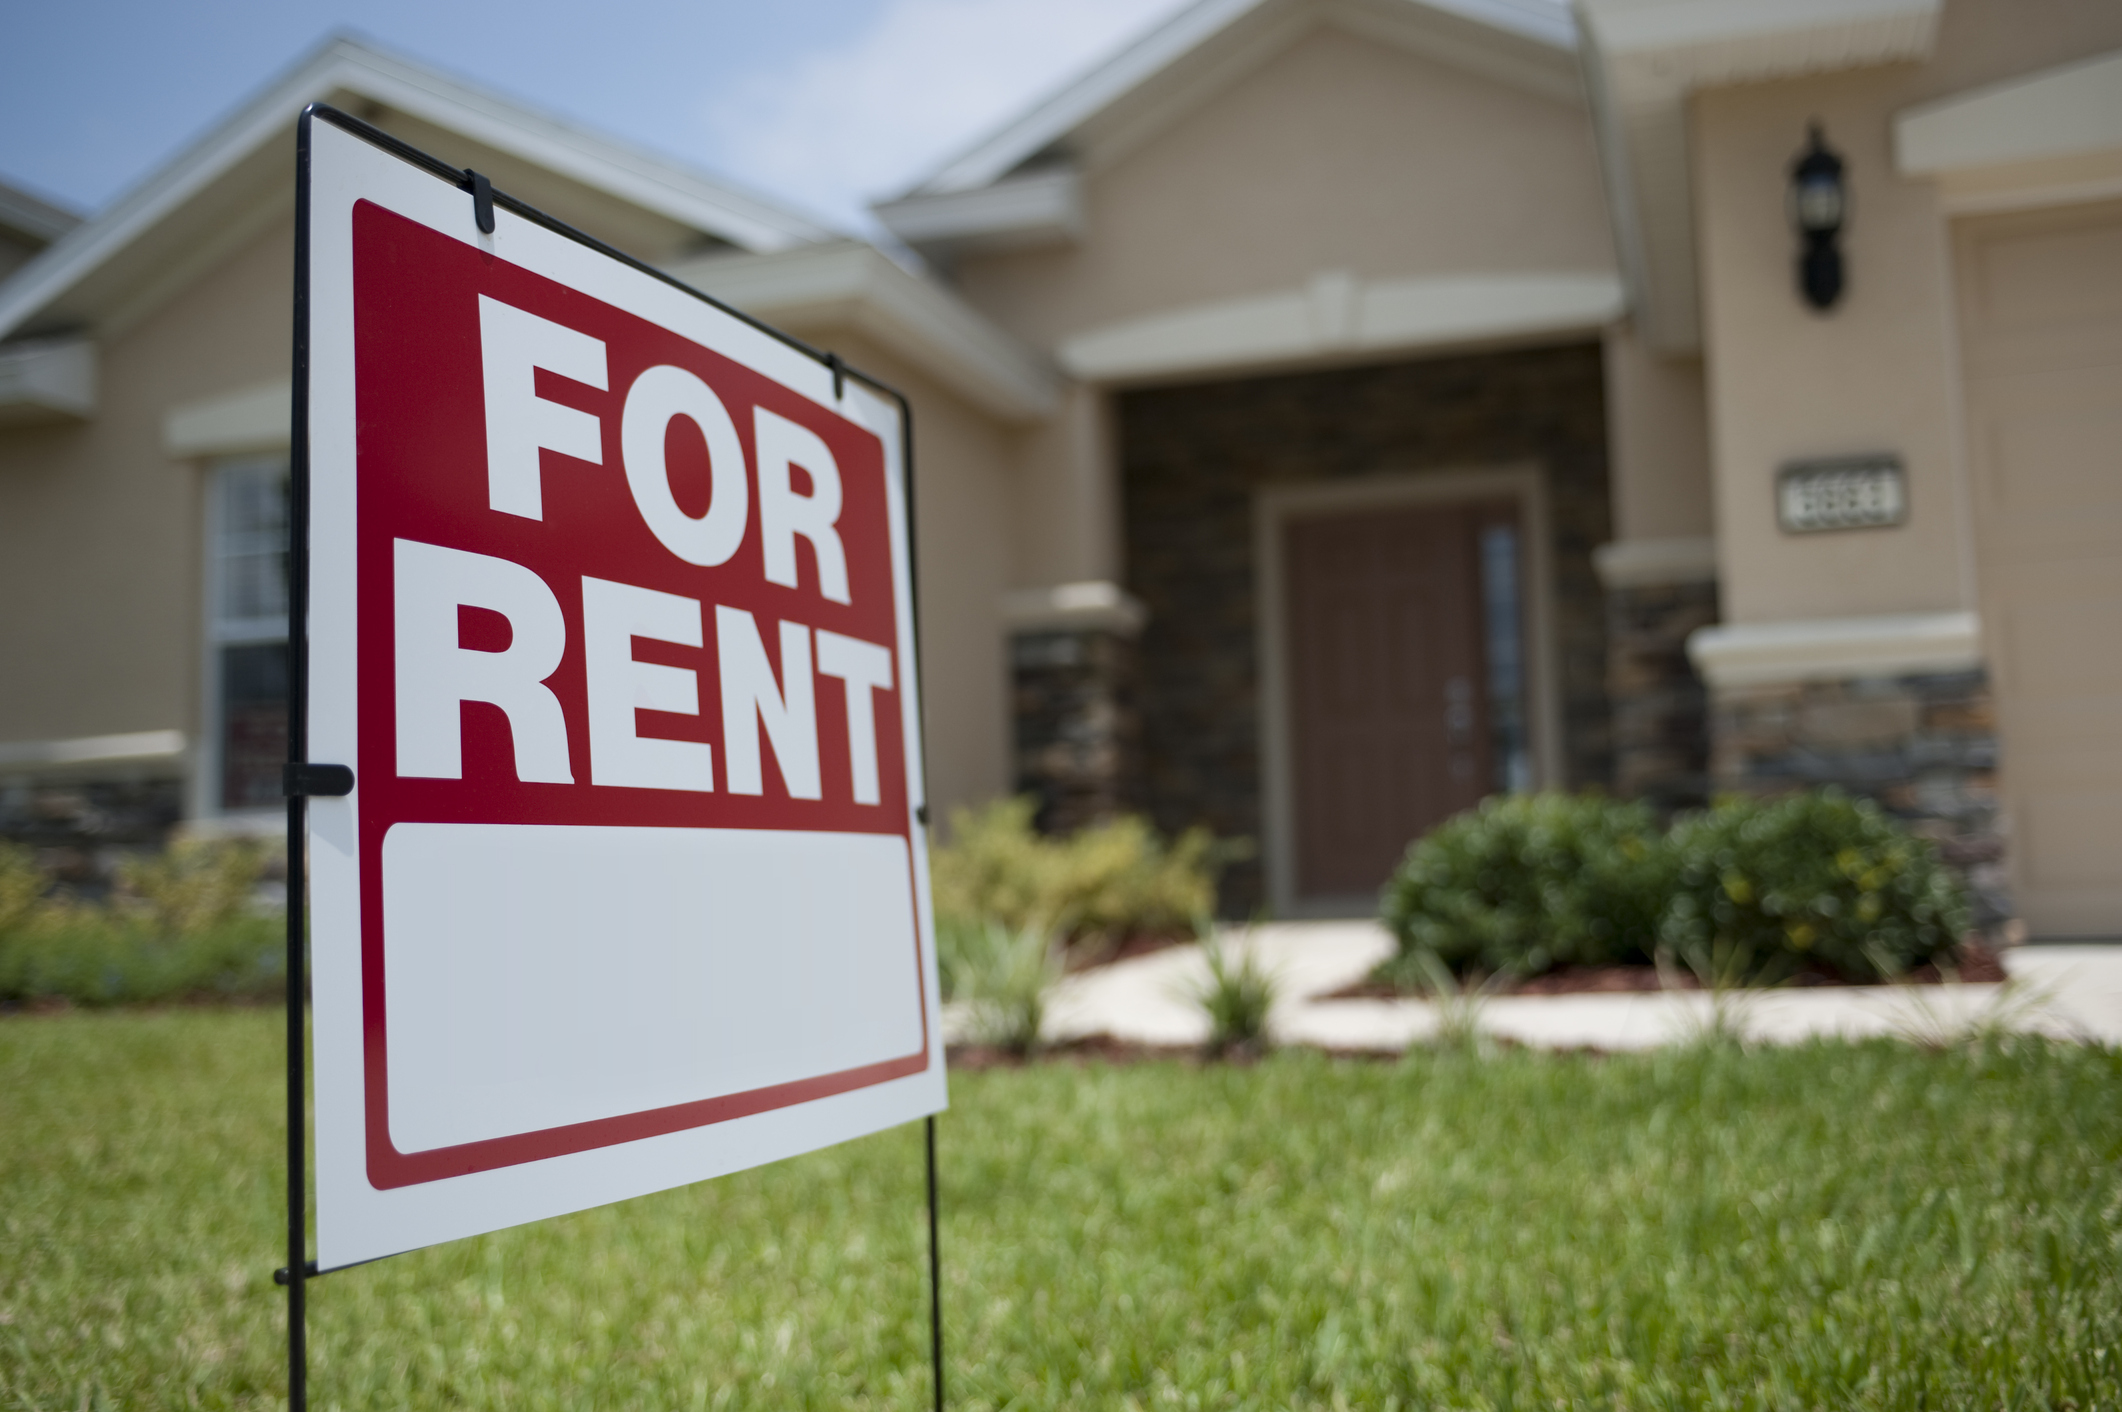 Build to rent home with for rent sign